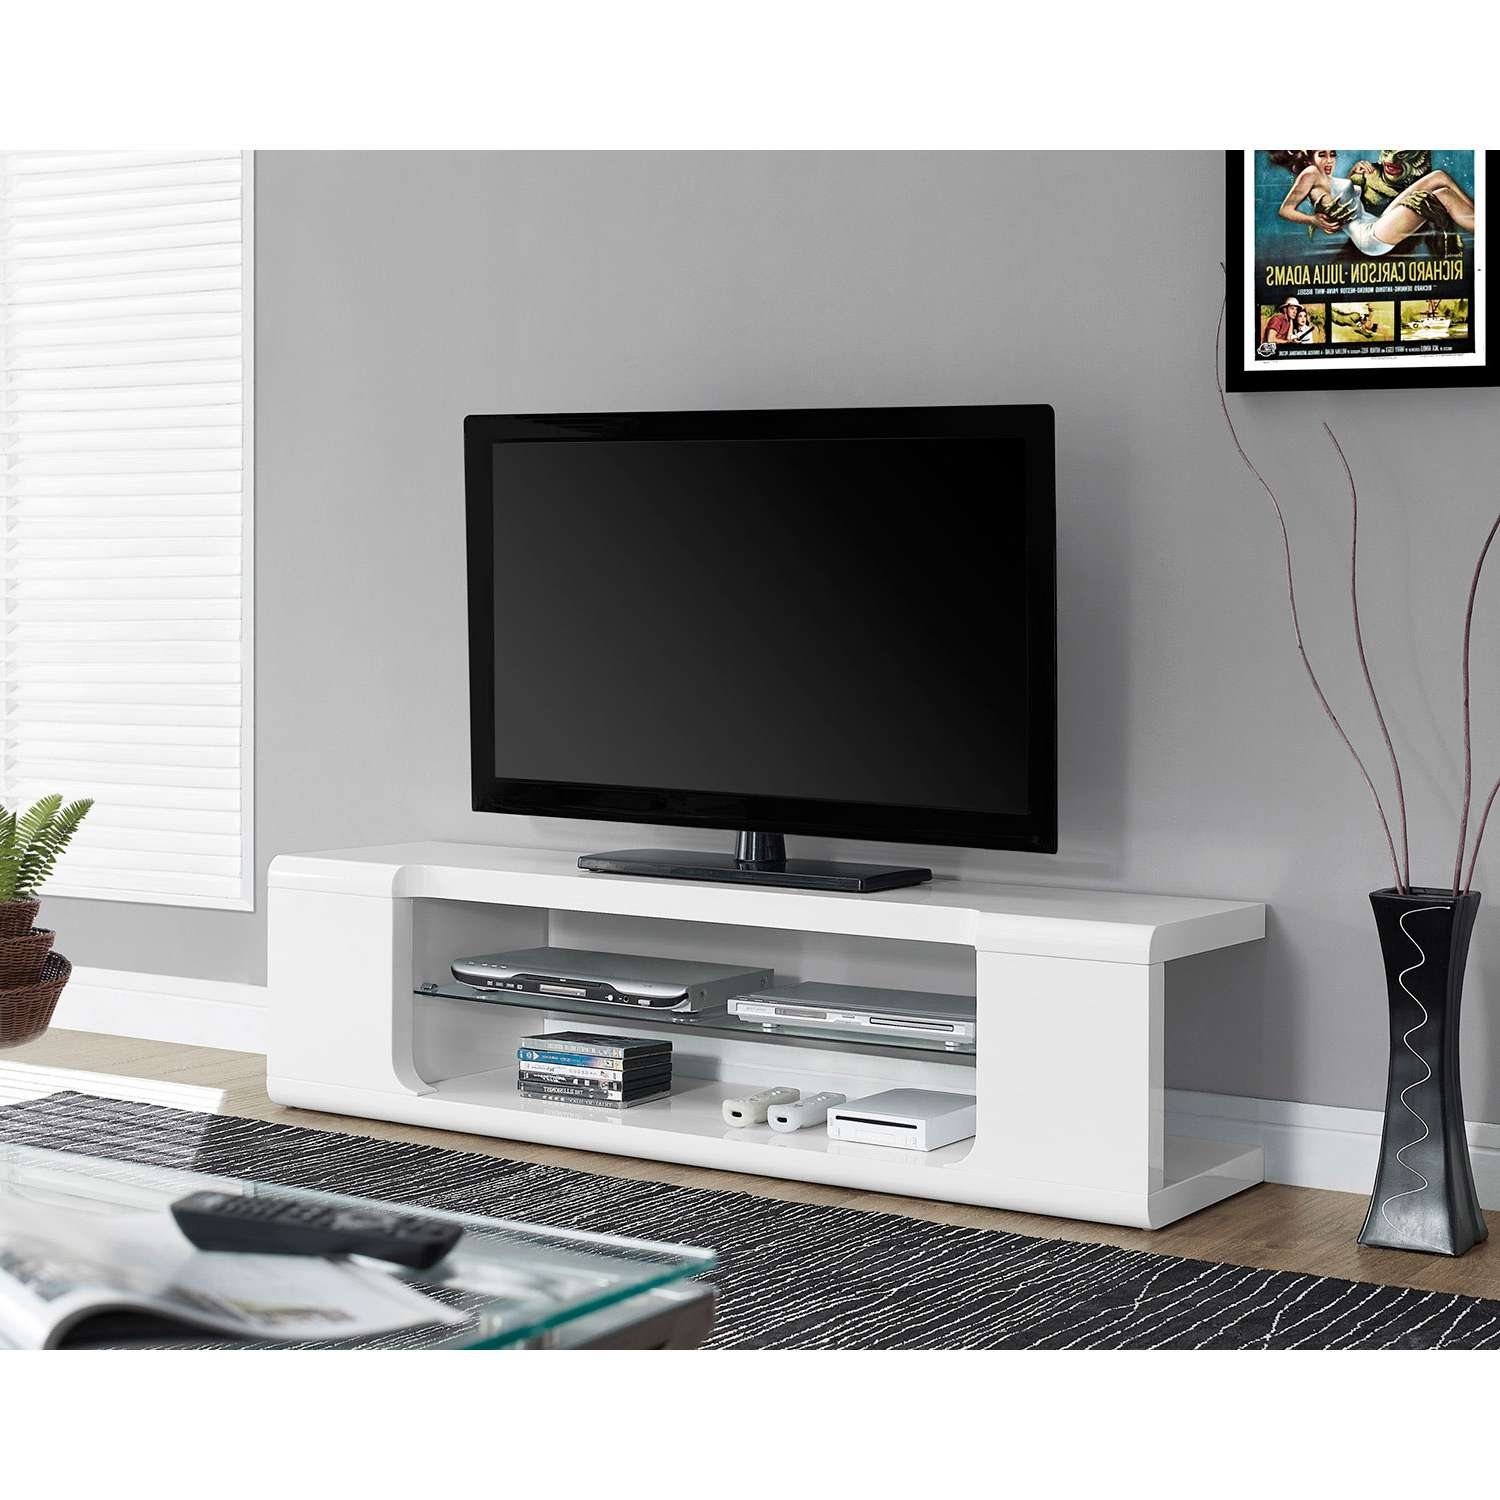 "Monarch Tv Stand For Tvs Up To 60"" (I 3535) – Glossy White : Tv In Contemporary Glass Tv Stands (View 9 of 15)"